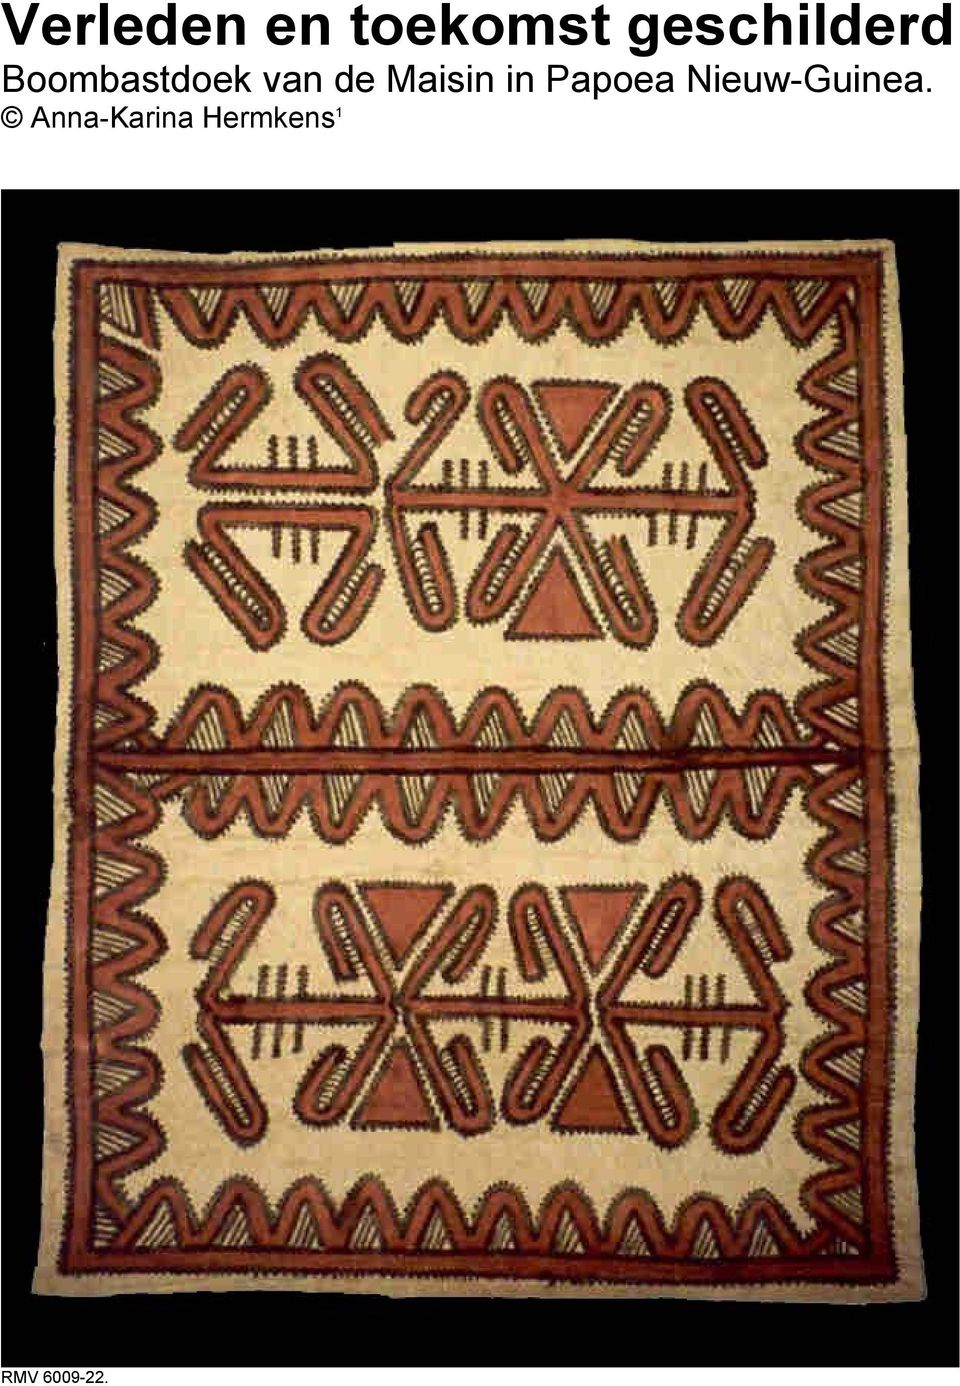 de Maisin in Papoea